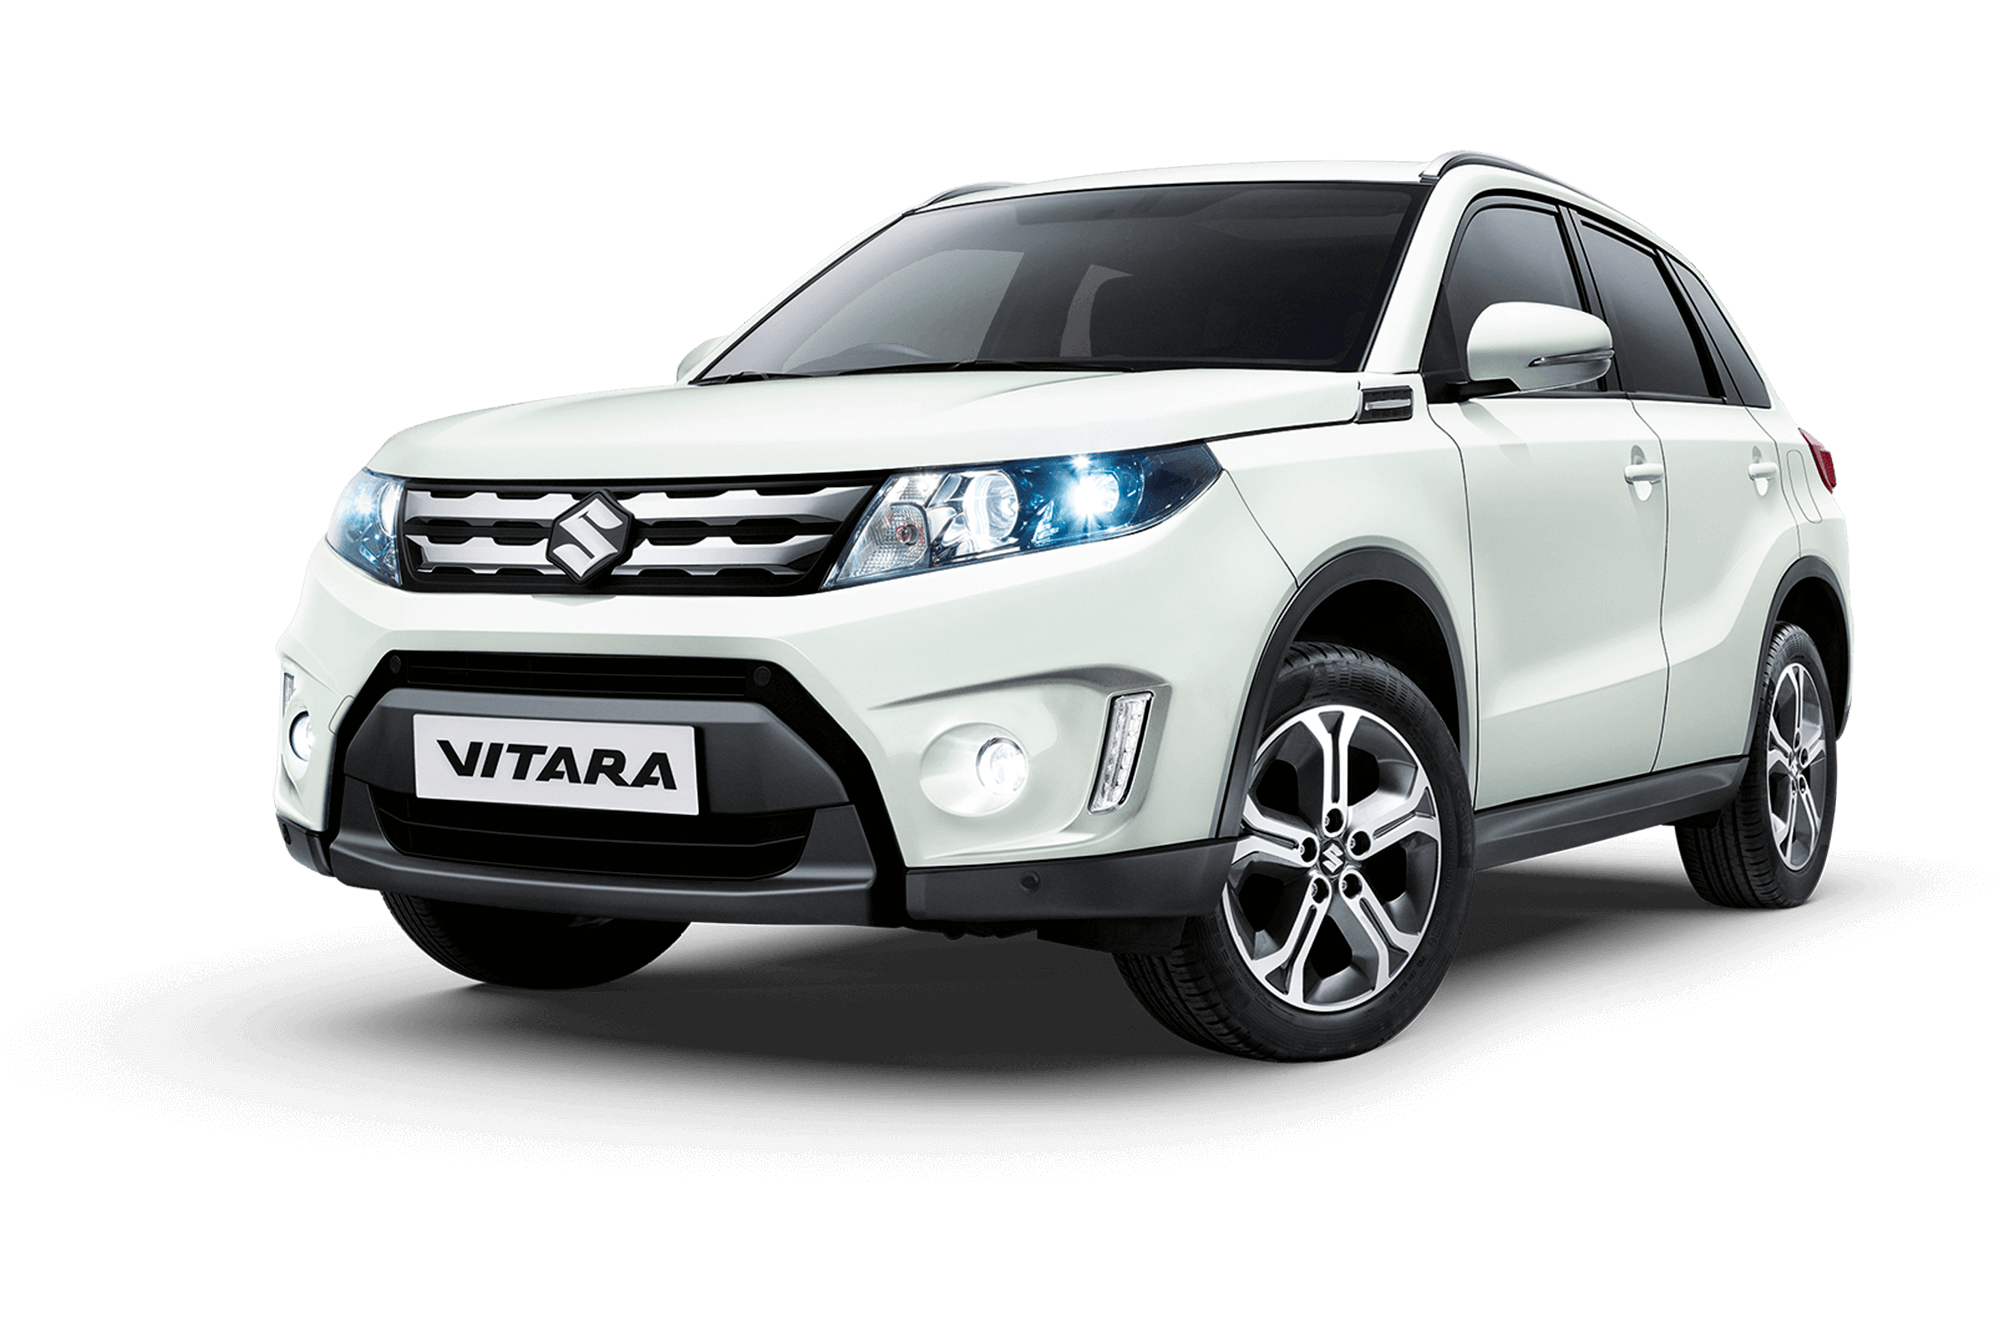 The Suzuki Vitara Suzuki Cars Uk